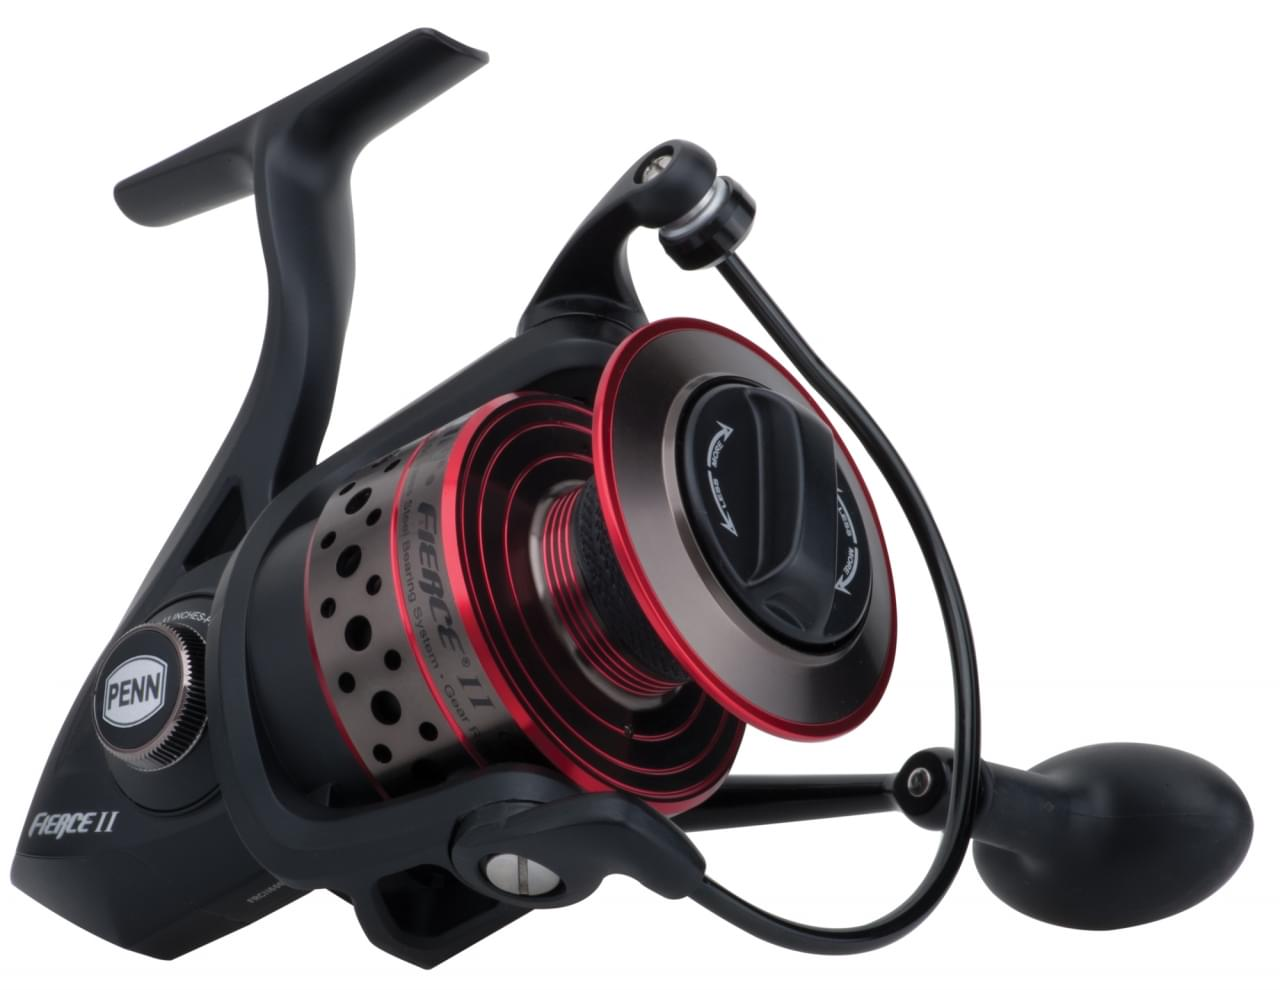 PENN FIERCE II 2500 SPIN REEL